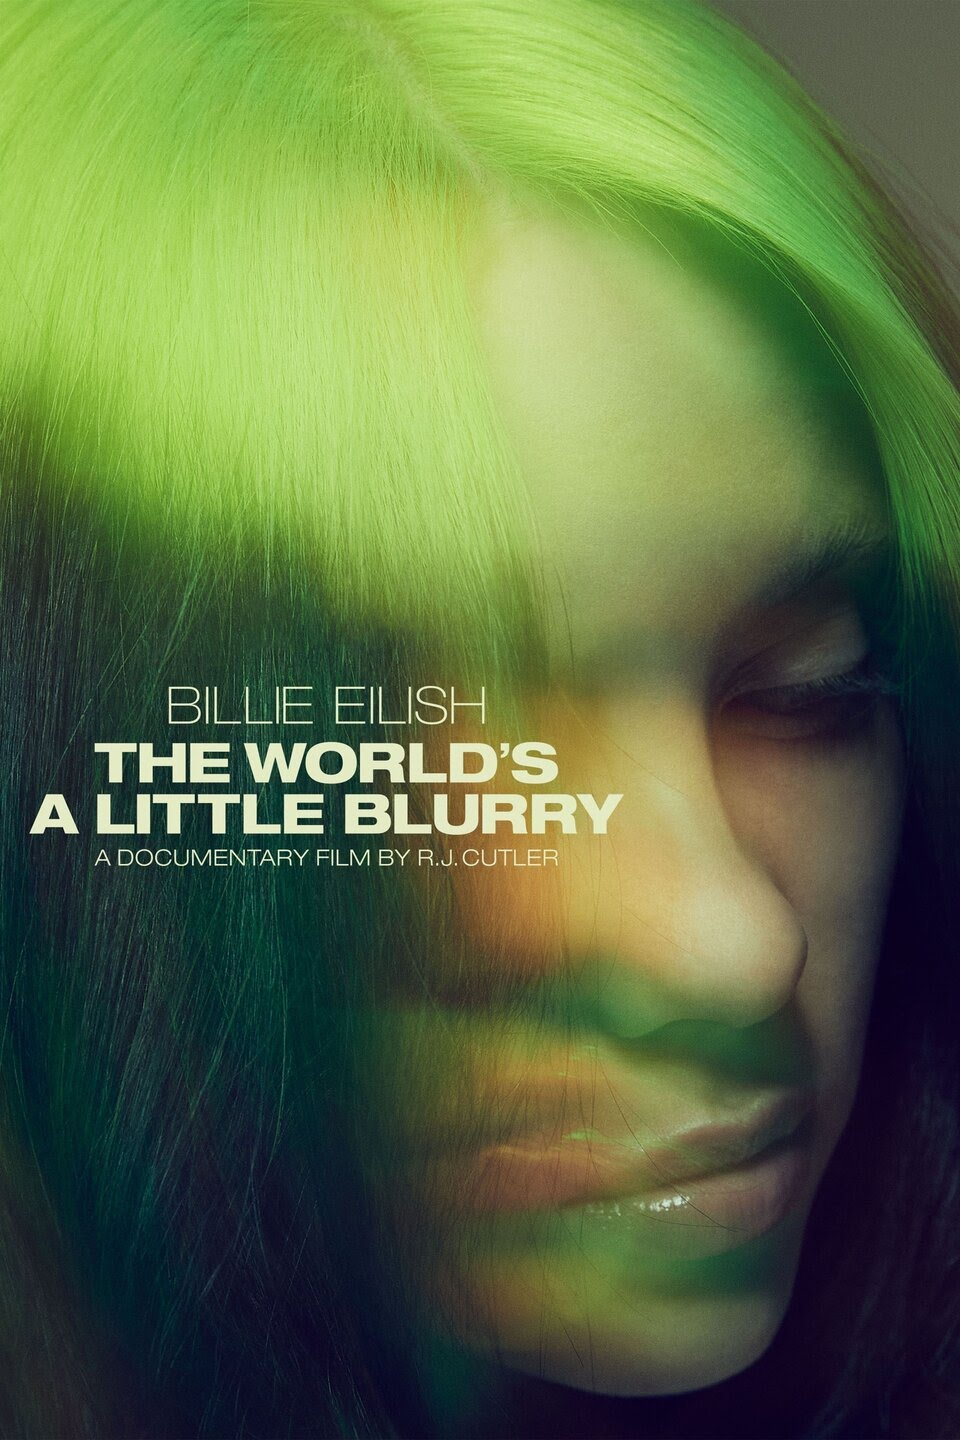 ดูหนังใหม่ Billie Eilish The World's a Little Blurry (2021)